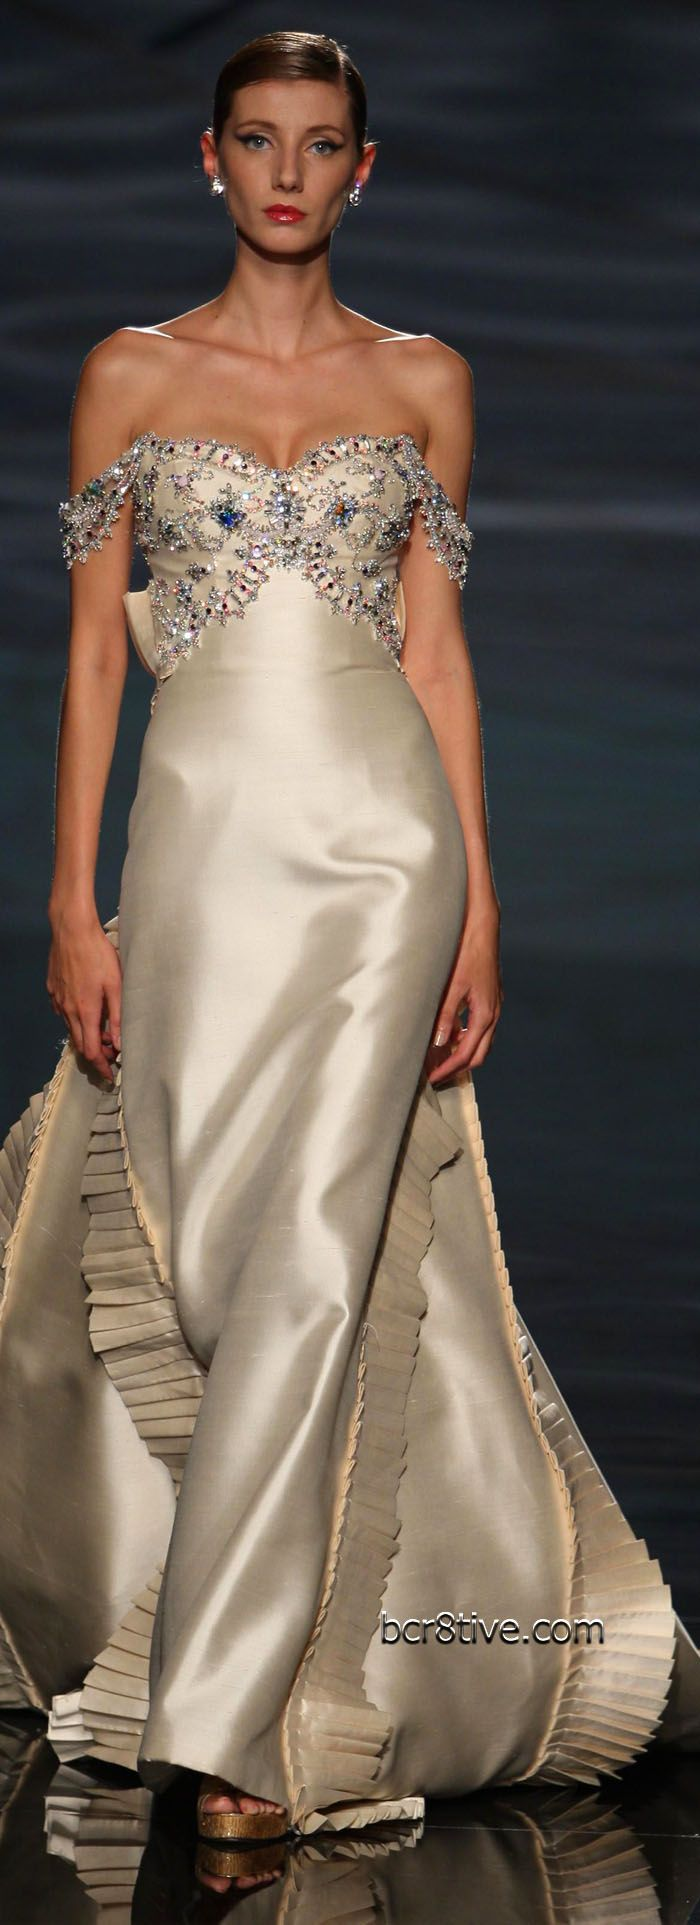 Fausto Sarli Couture - Fall Winter 2009